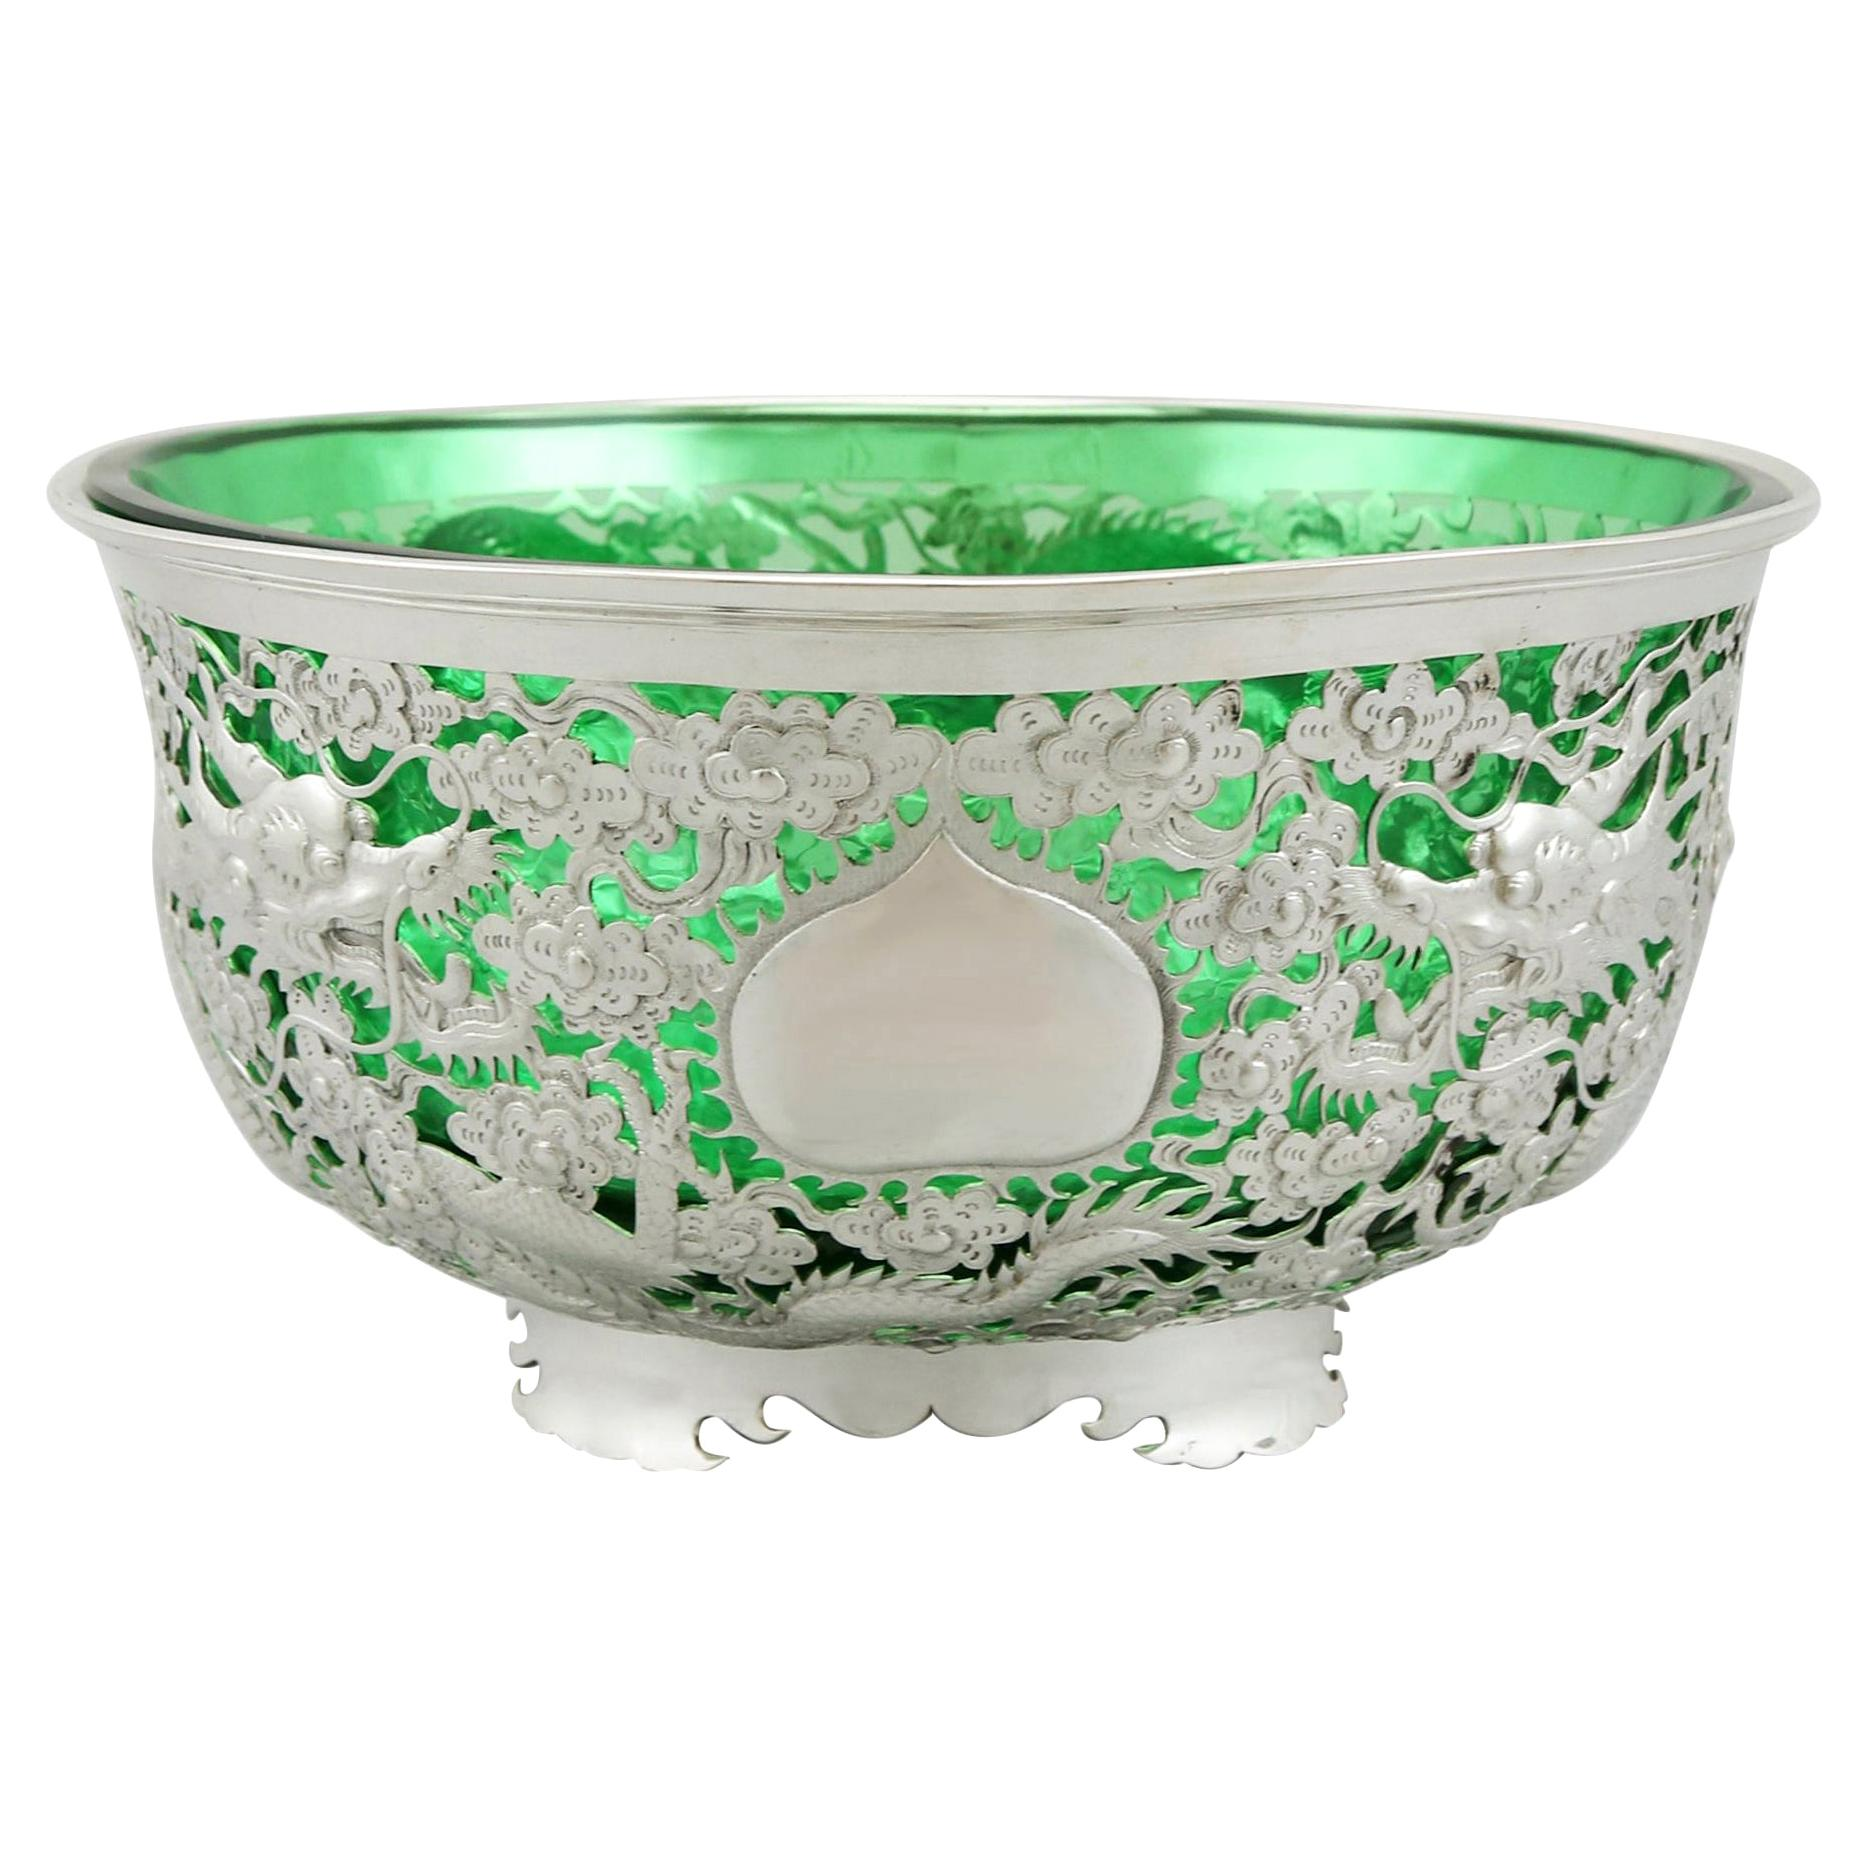 Antique Chinese Export Silver Bowl, circa 1890